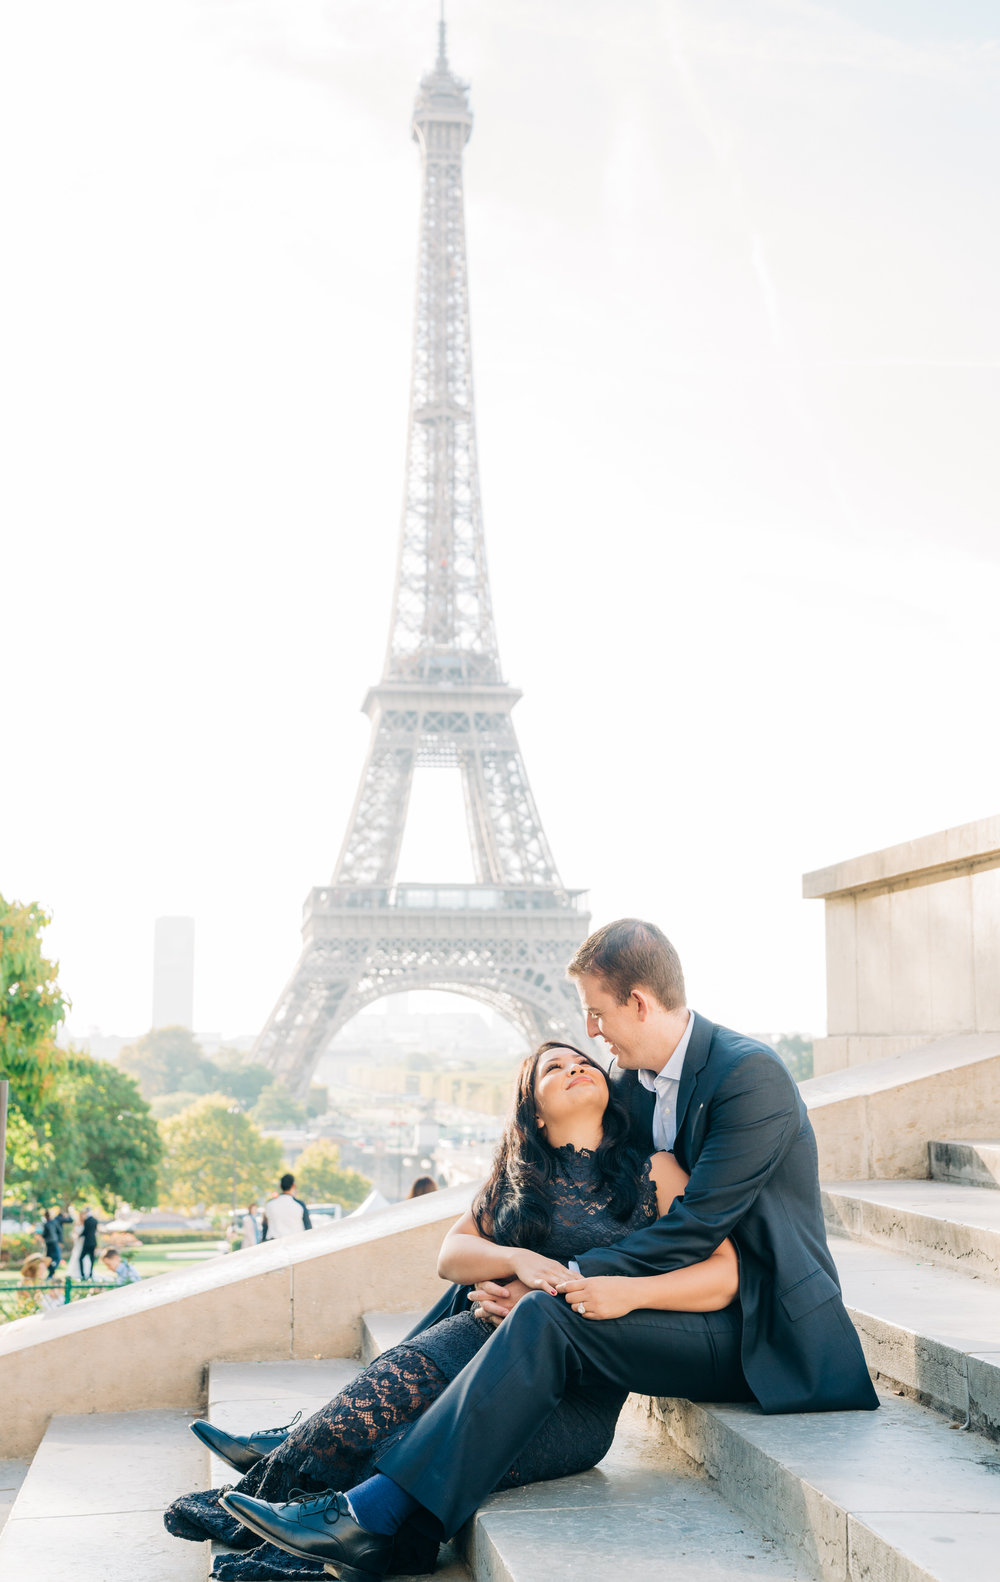 romantic eiffel tower anniversary photo shoot at the eiffel tower in paris